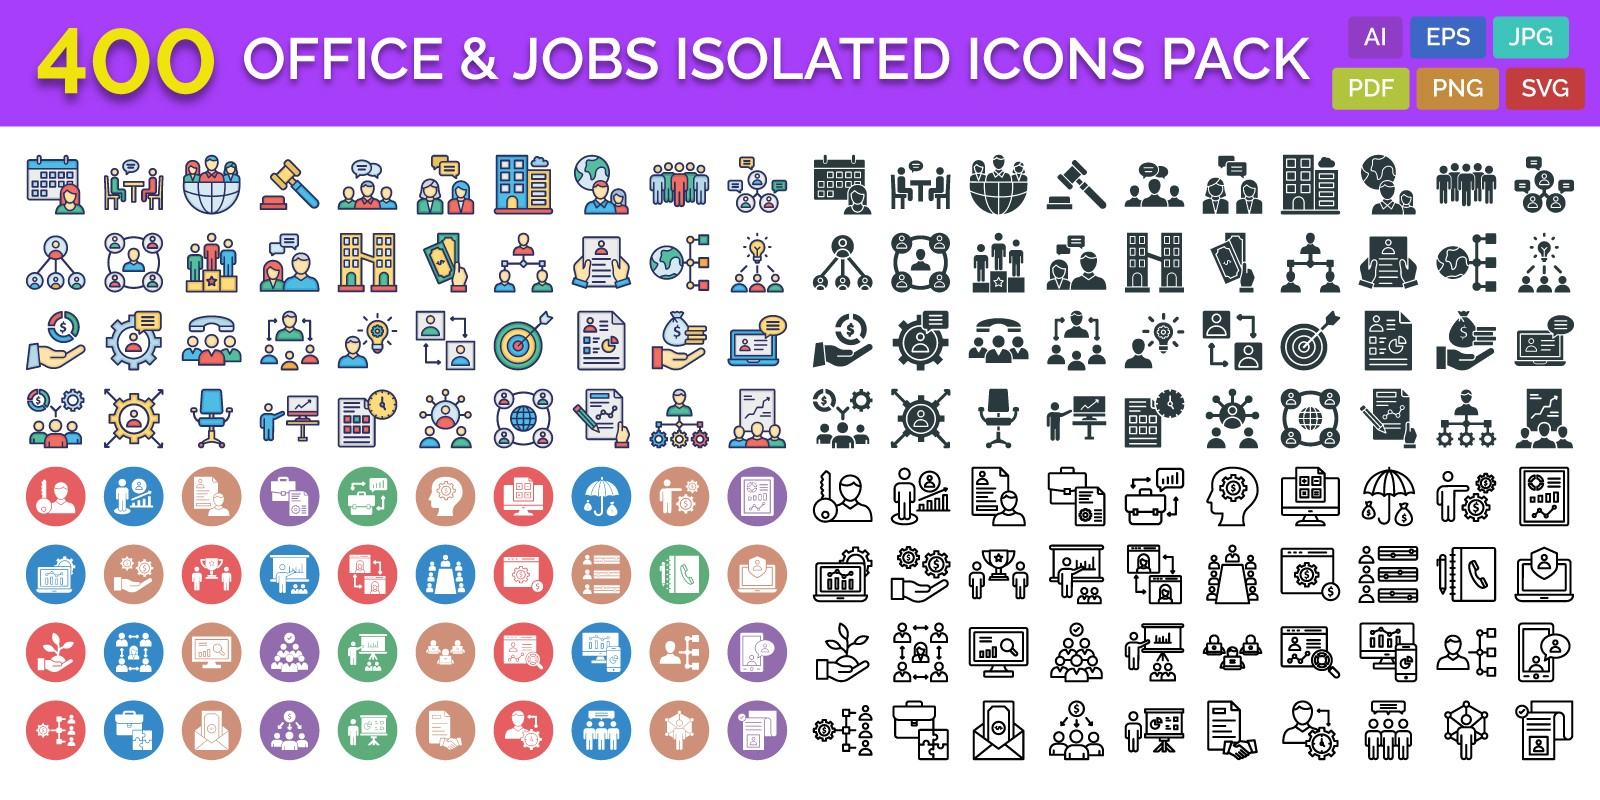 400 Office And Jobs Isolated Vector Icons Pack